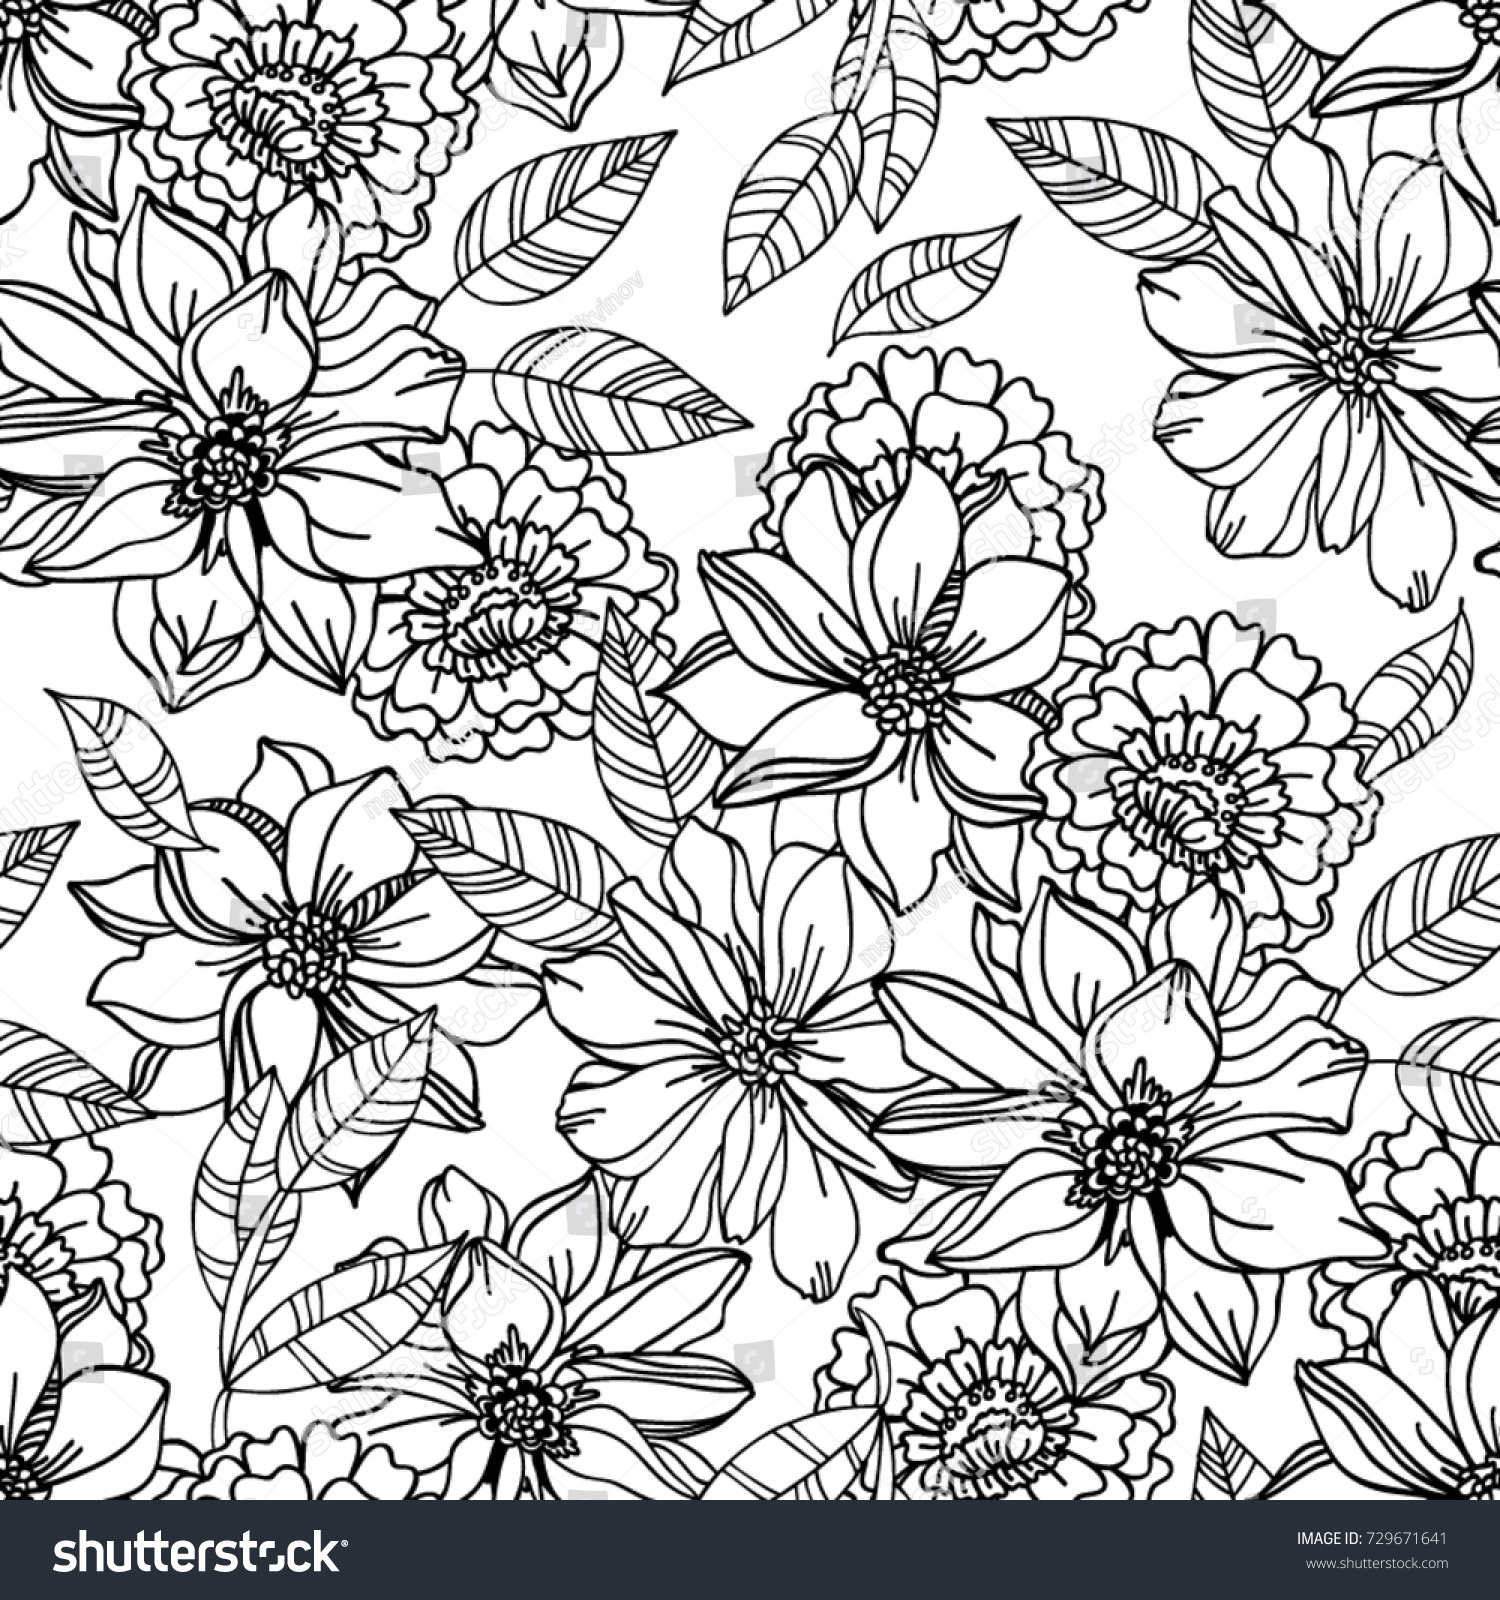 Black And White Flower Pattern For Coloring Endless Floral Drawing